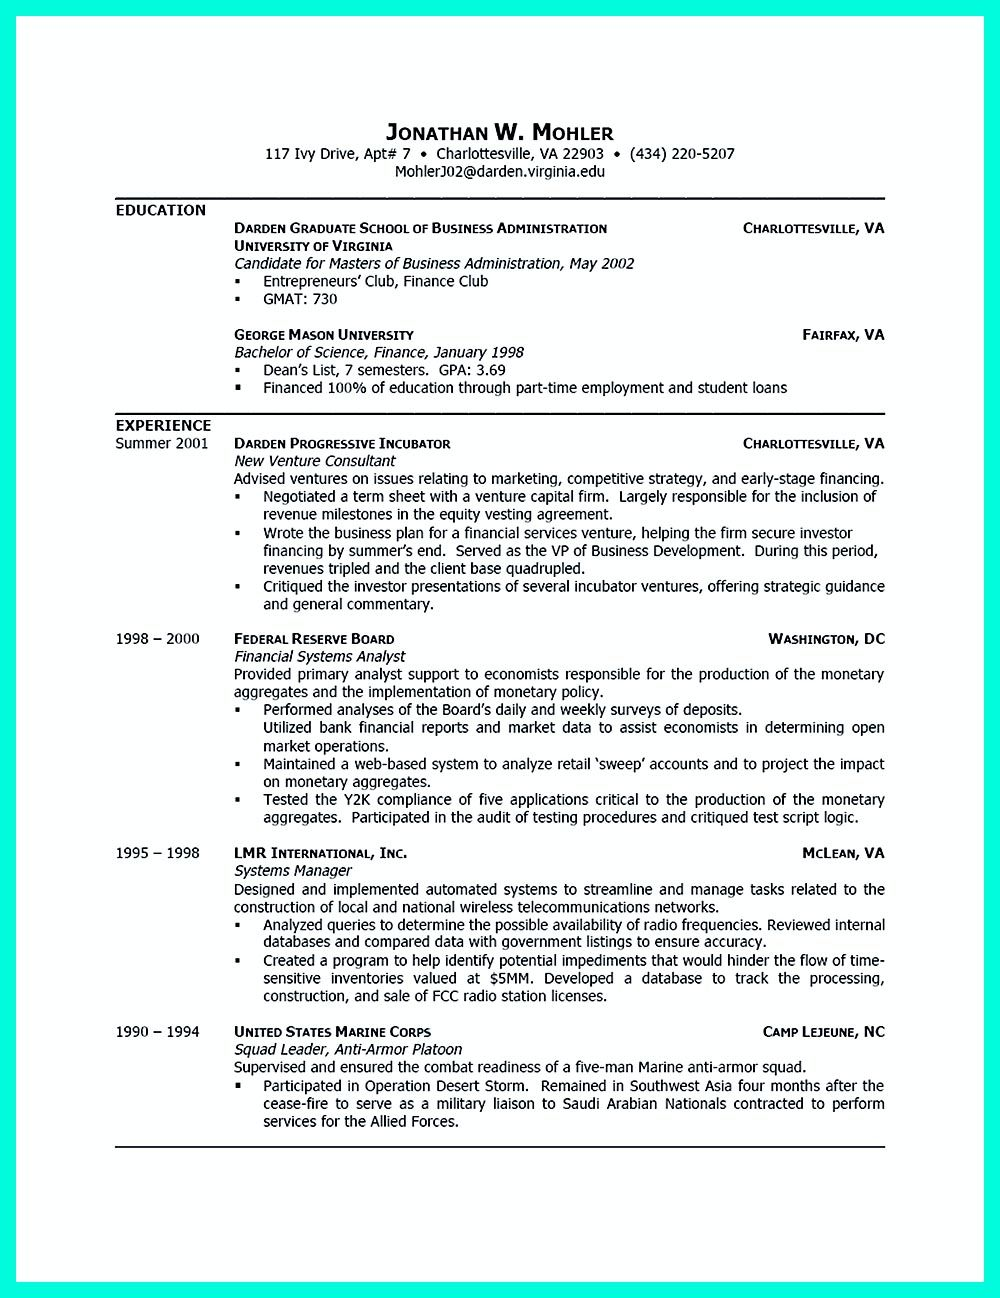 college resume is designed for college students either with or without experience to get a job